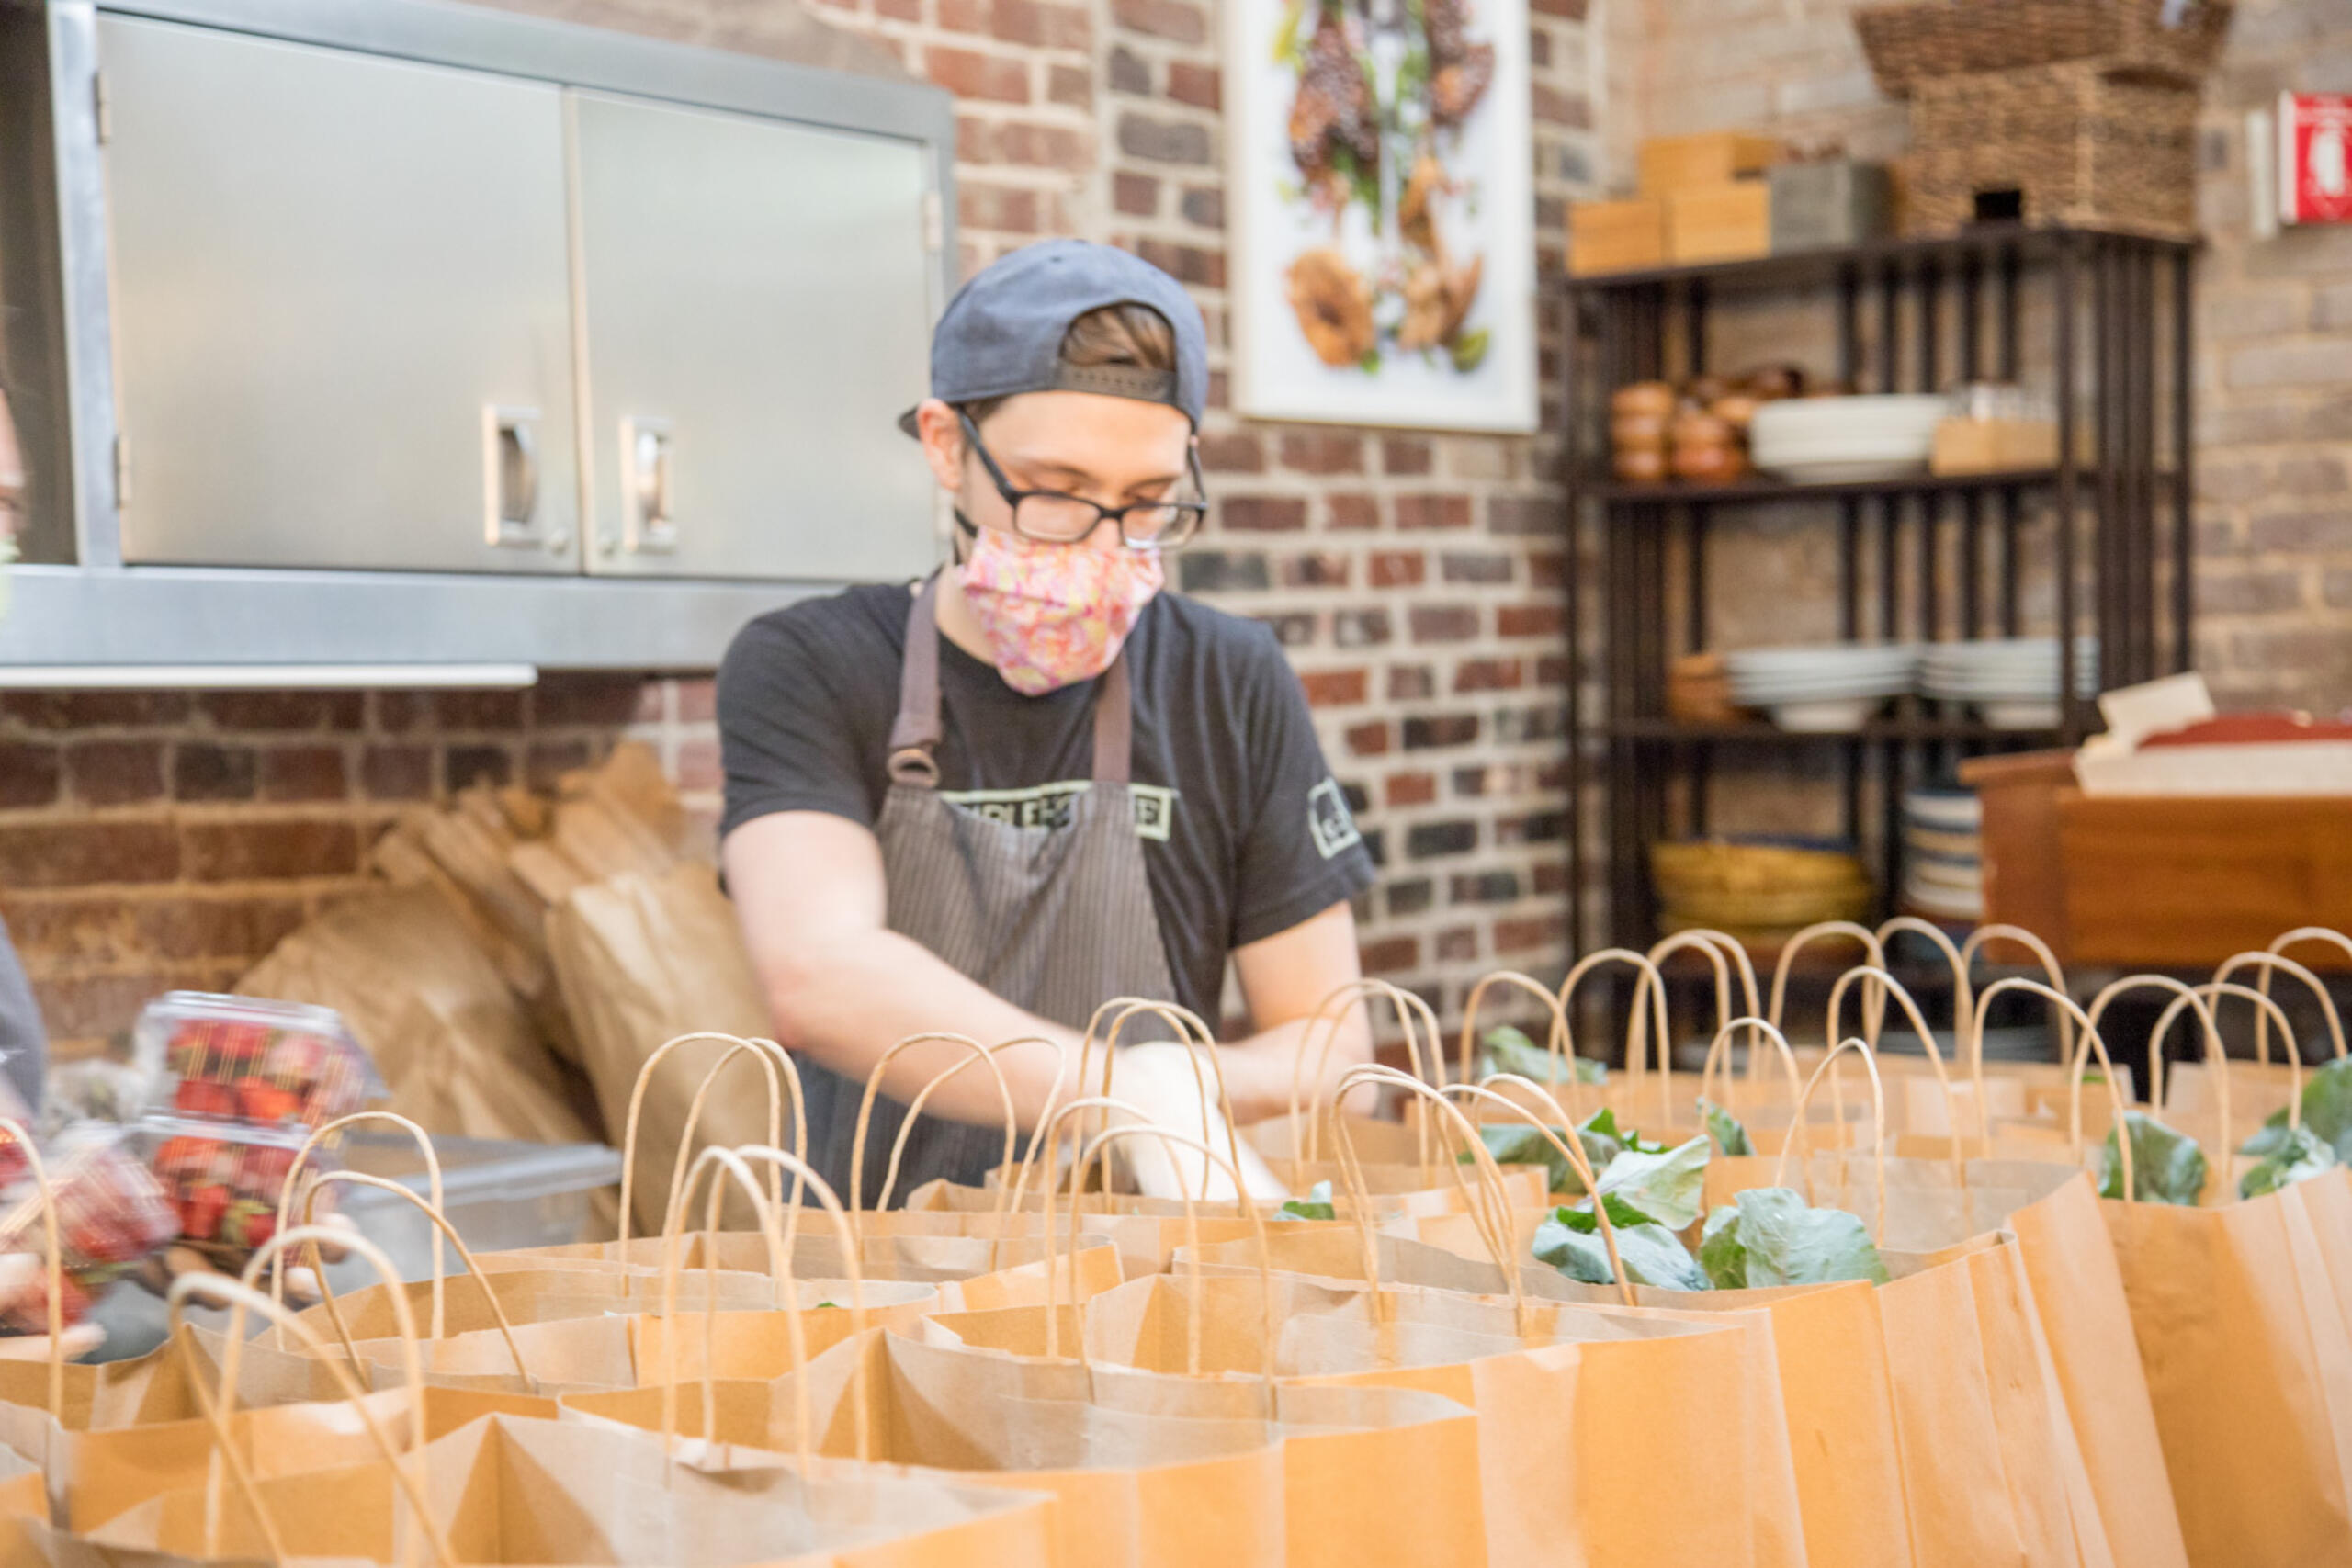 Person working in restaurant filling paper grocery bags with food for delivery